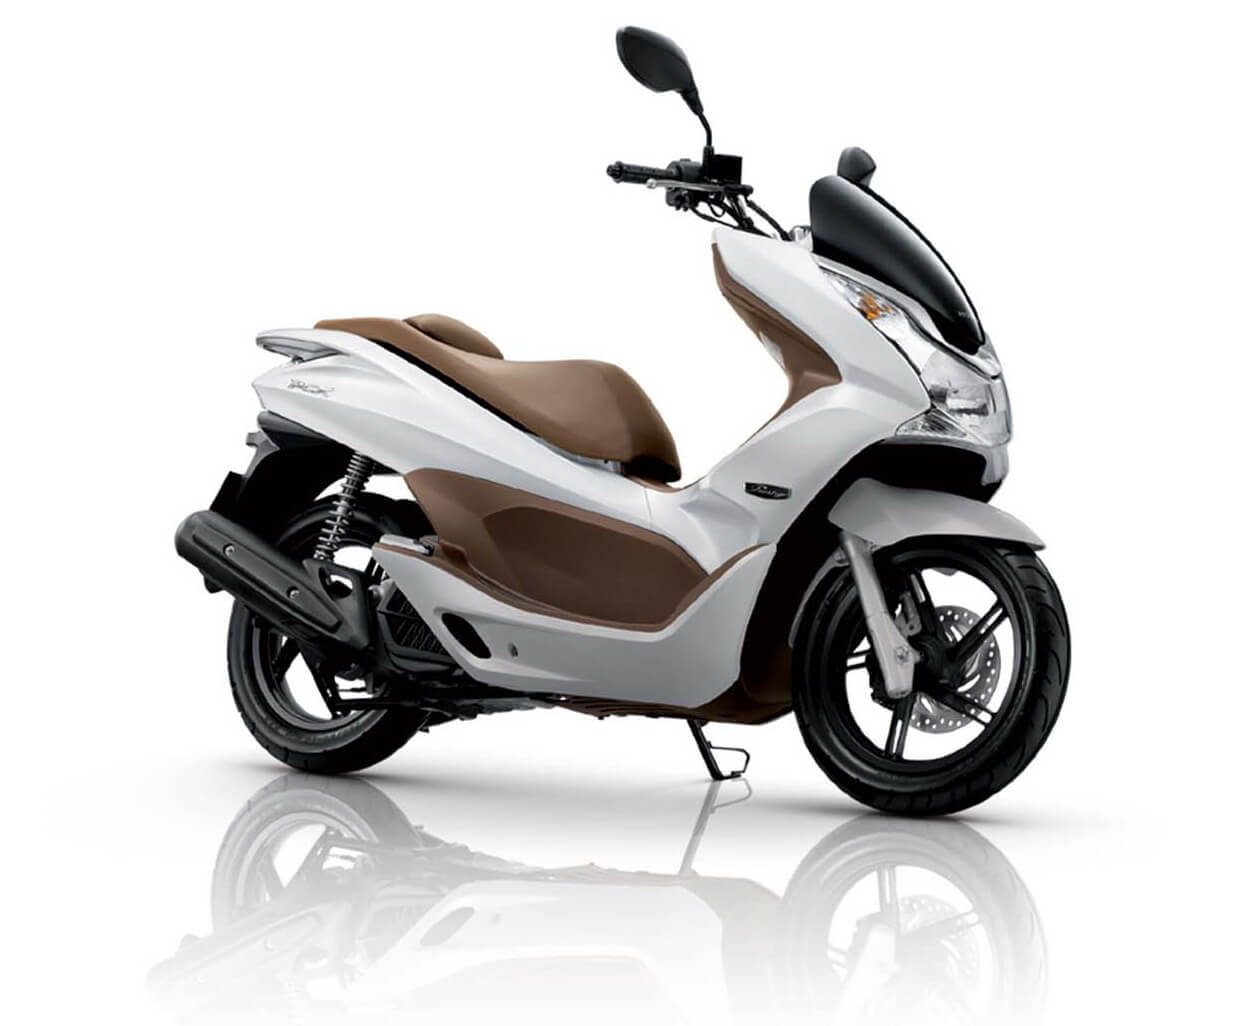 Honda Pcx Price In India Pcx Mileage Images Specifications